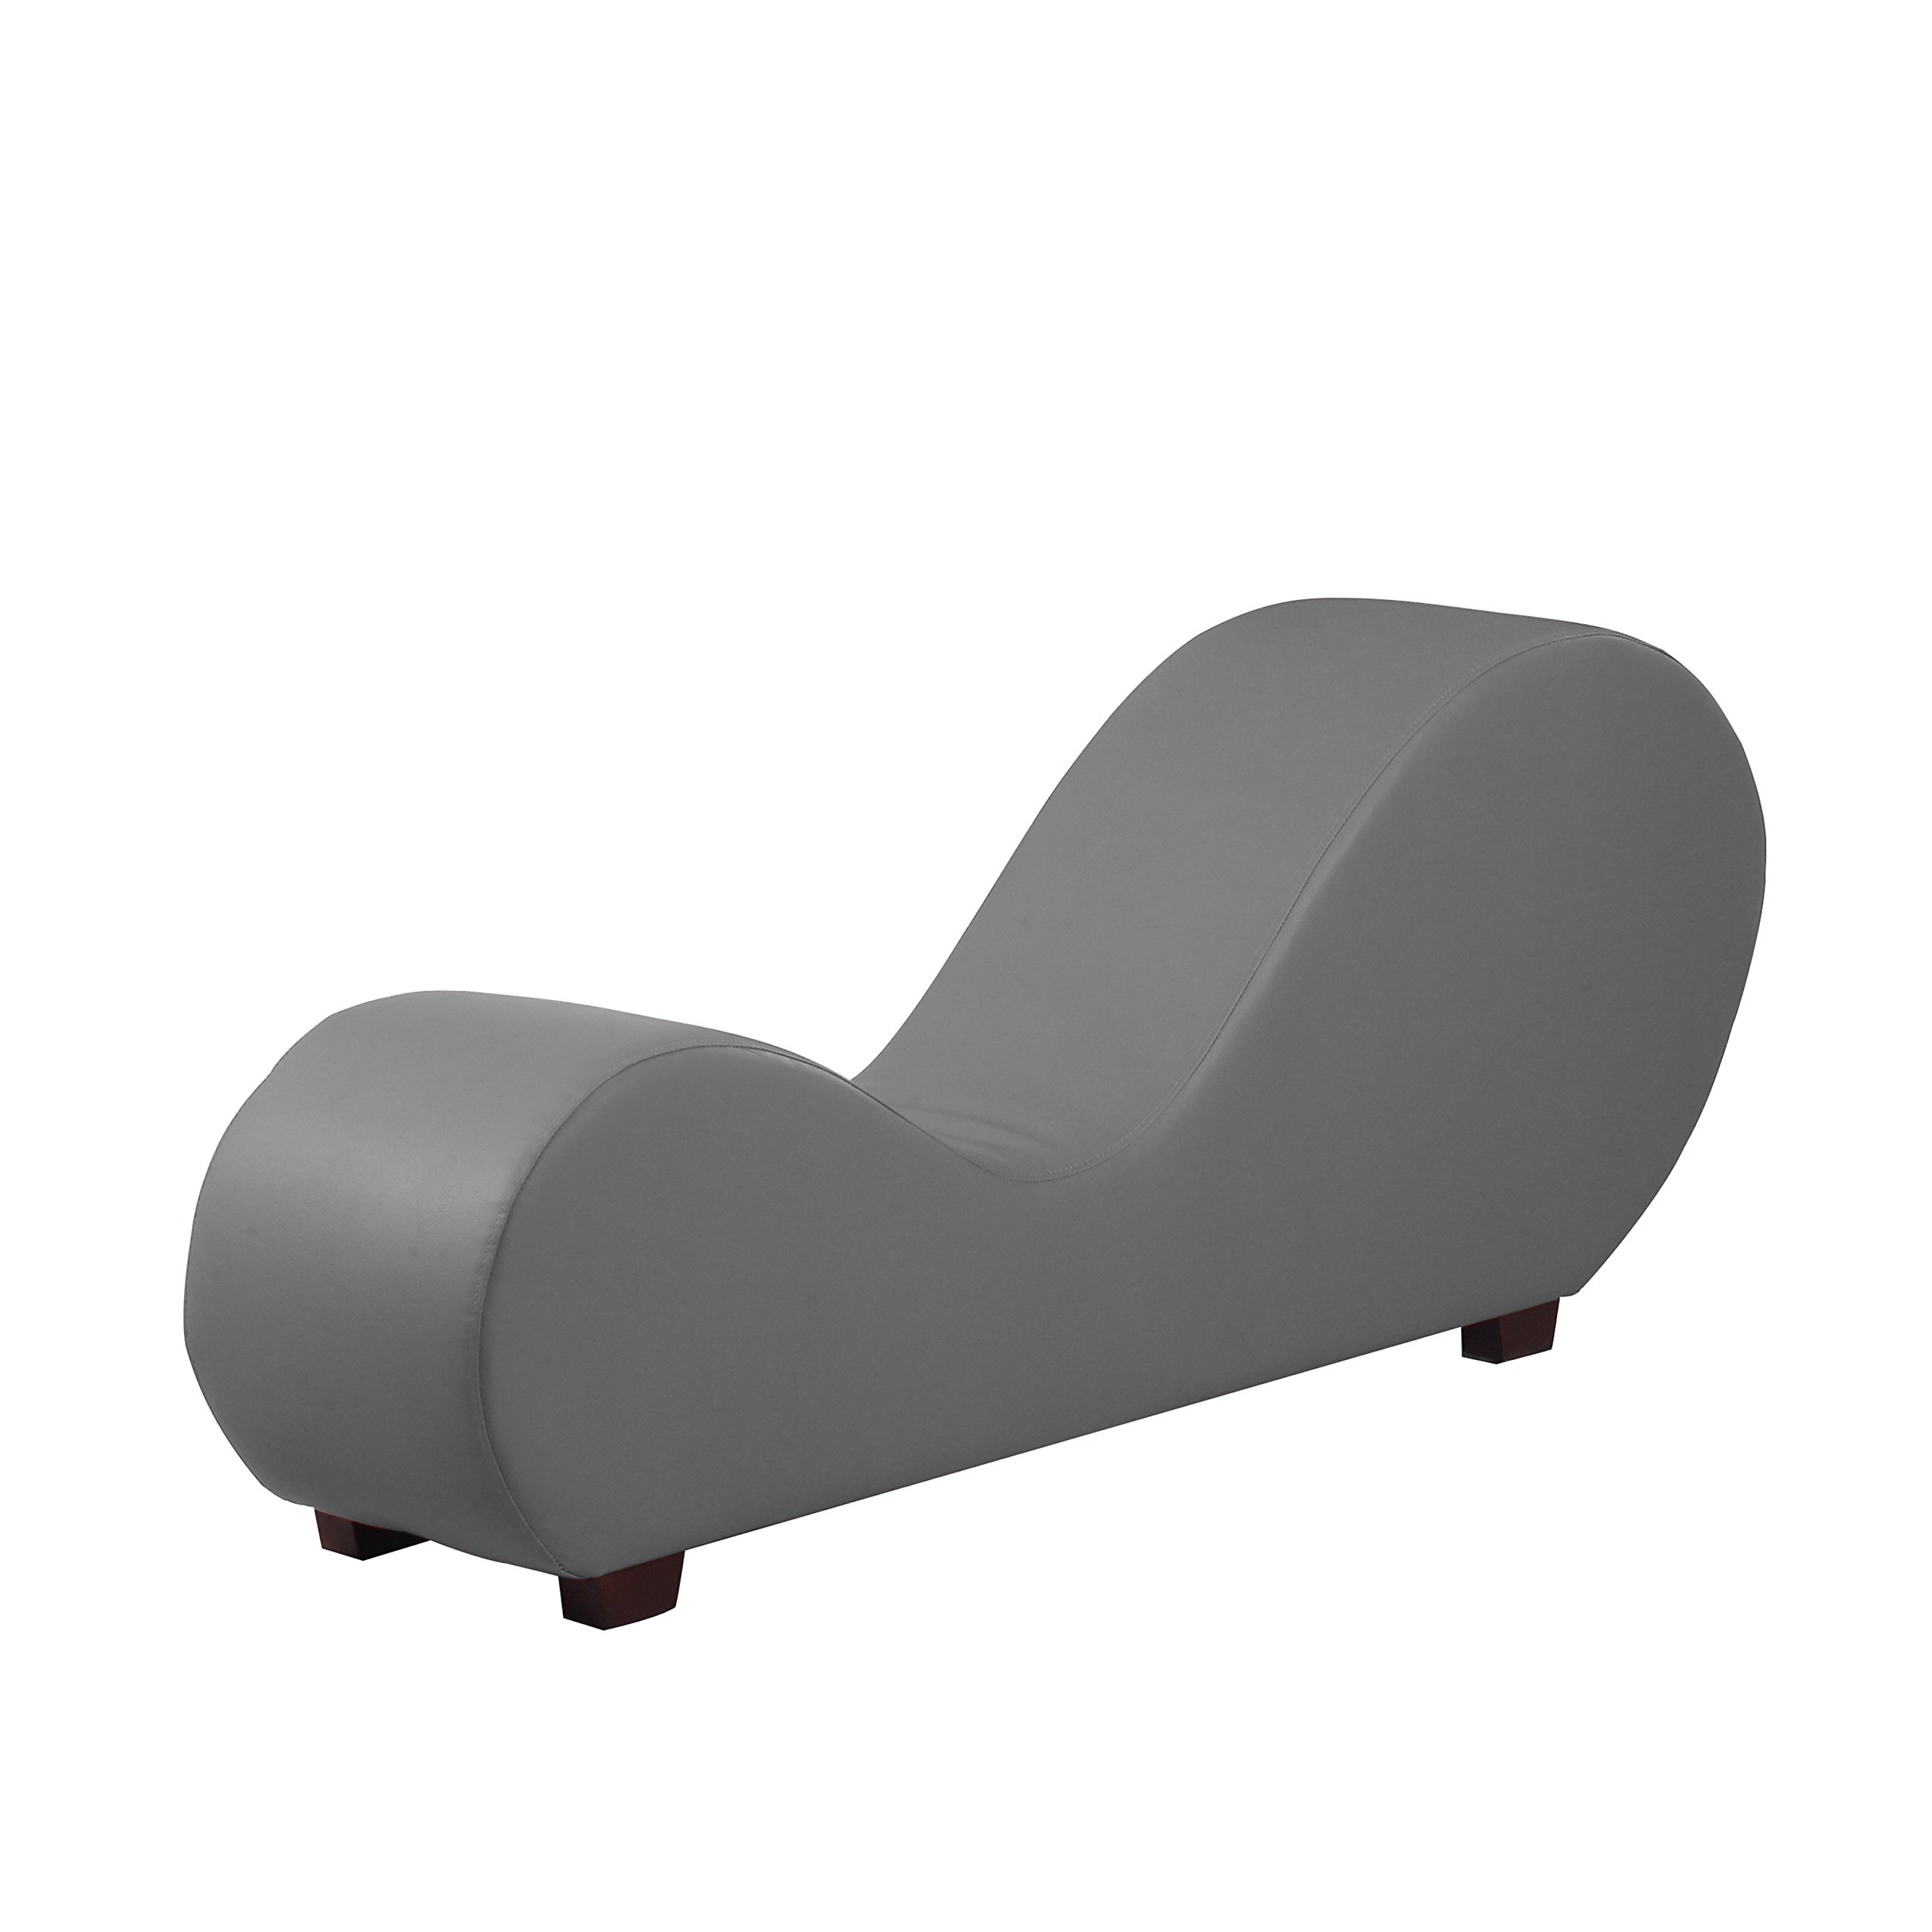 Modern Bonded Leather chaise Lounge Yoga Chair for Stretching and Relaxation (Grey)